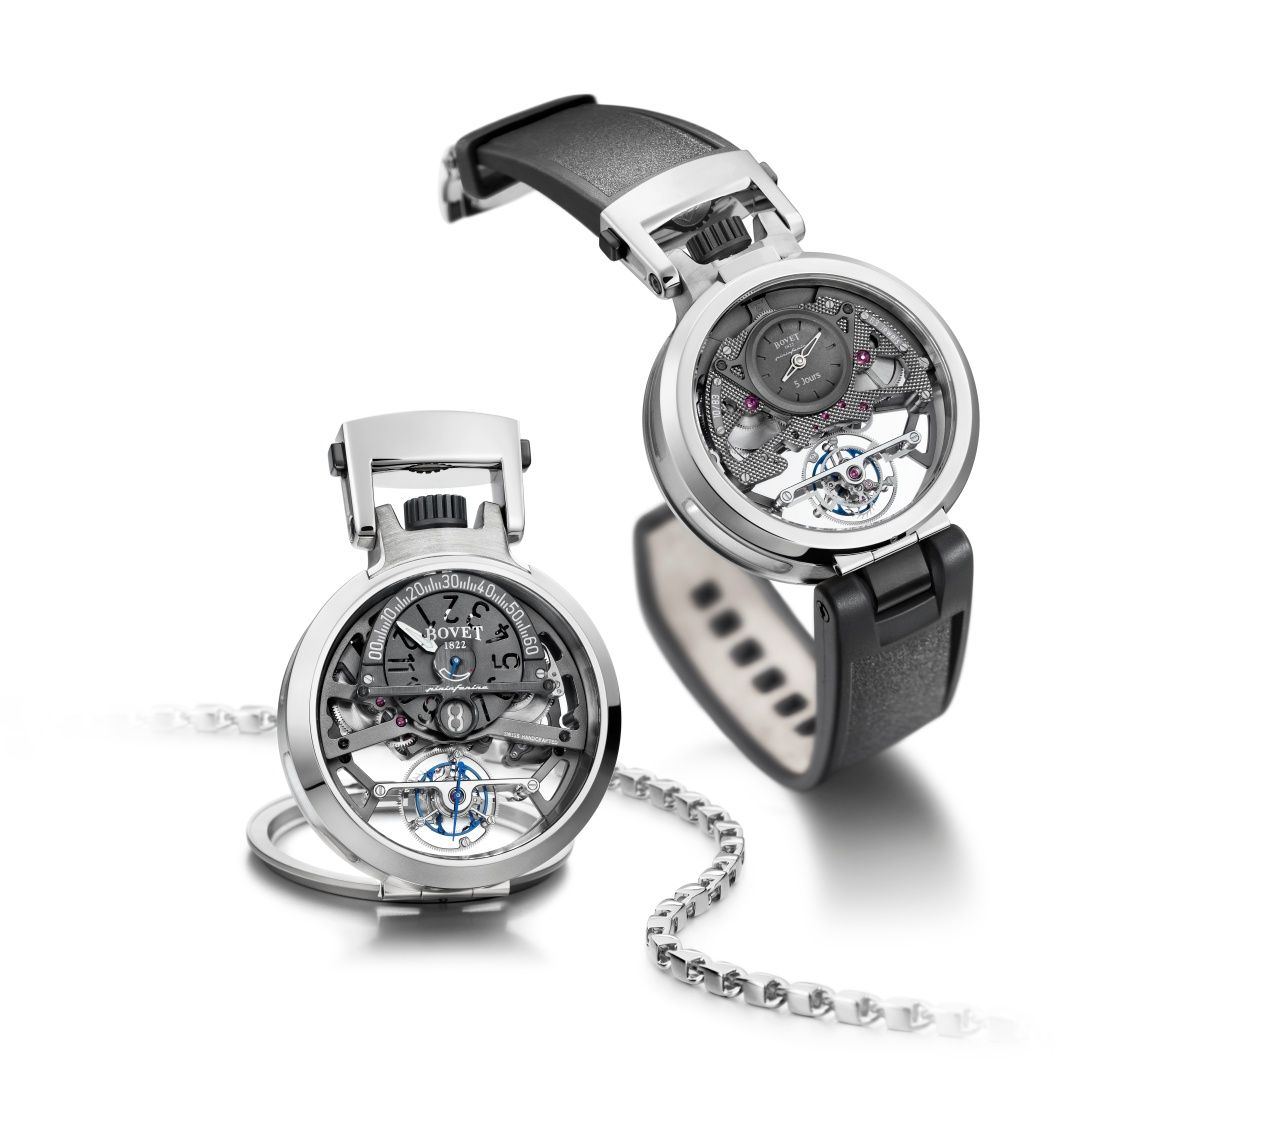 Bovet Watch   BOVET by Pininfarina   Ref. Nr.  TPINT002    Call 312-944-3100  | For Availability